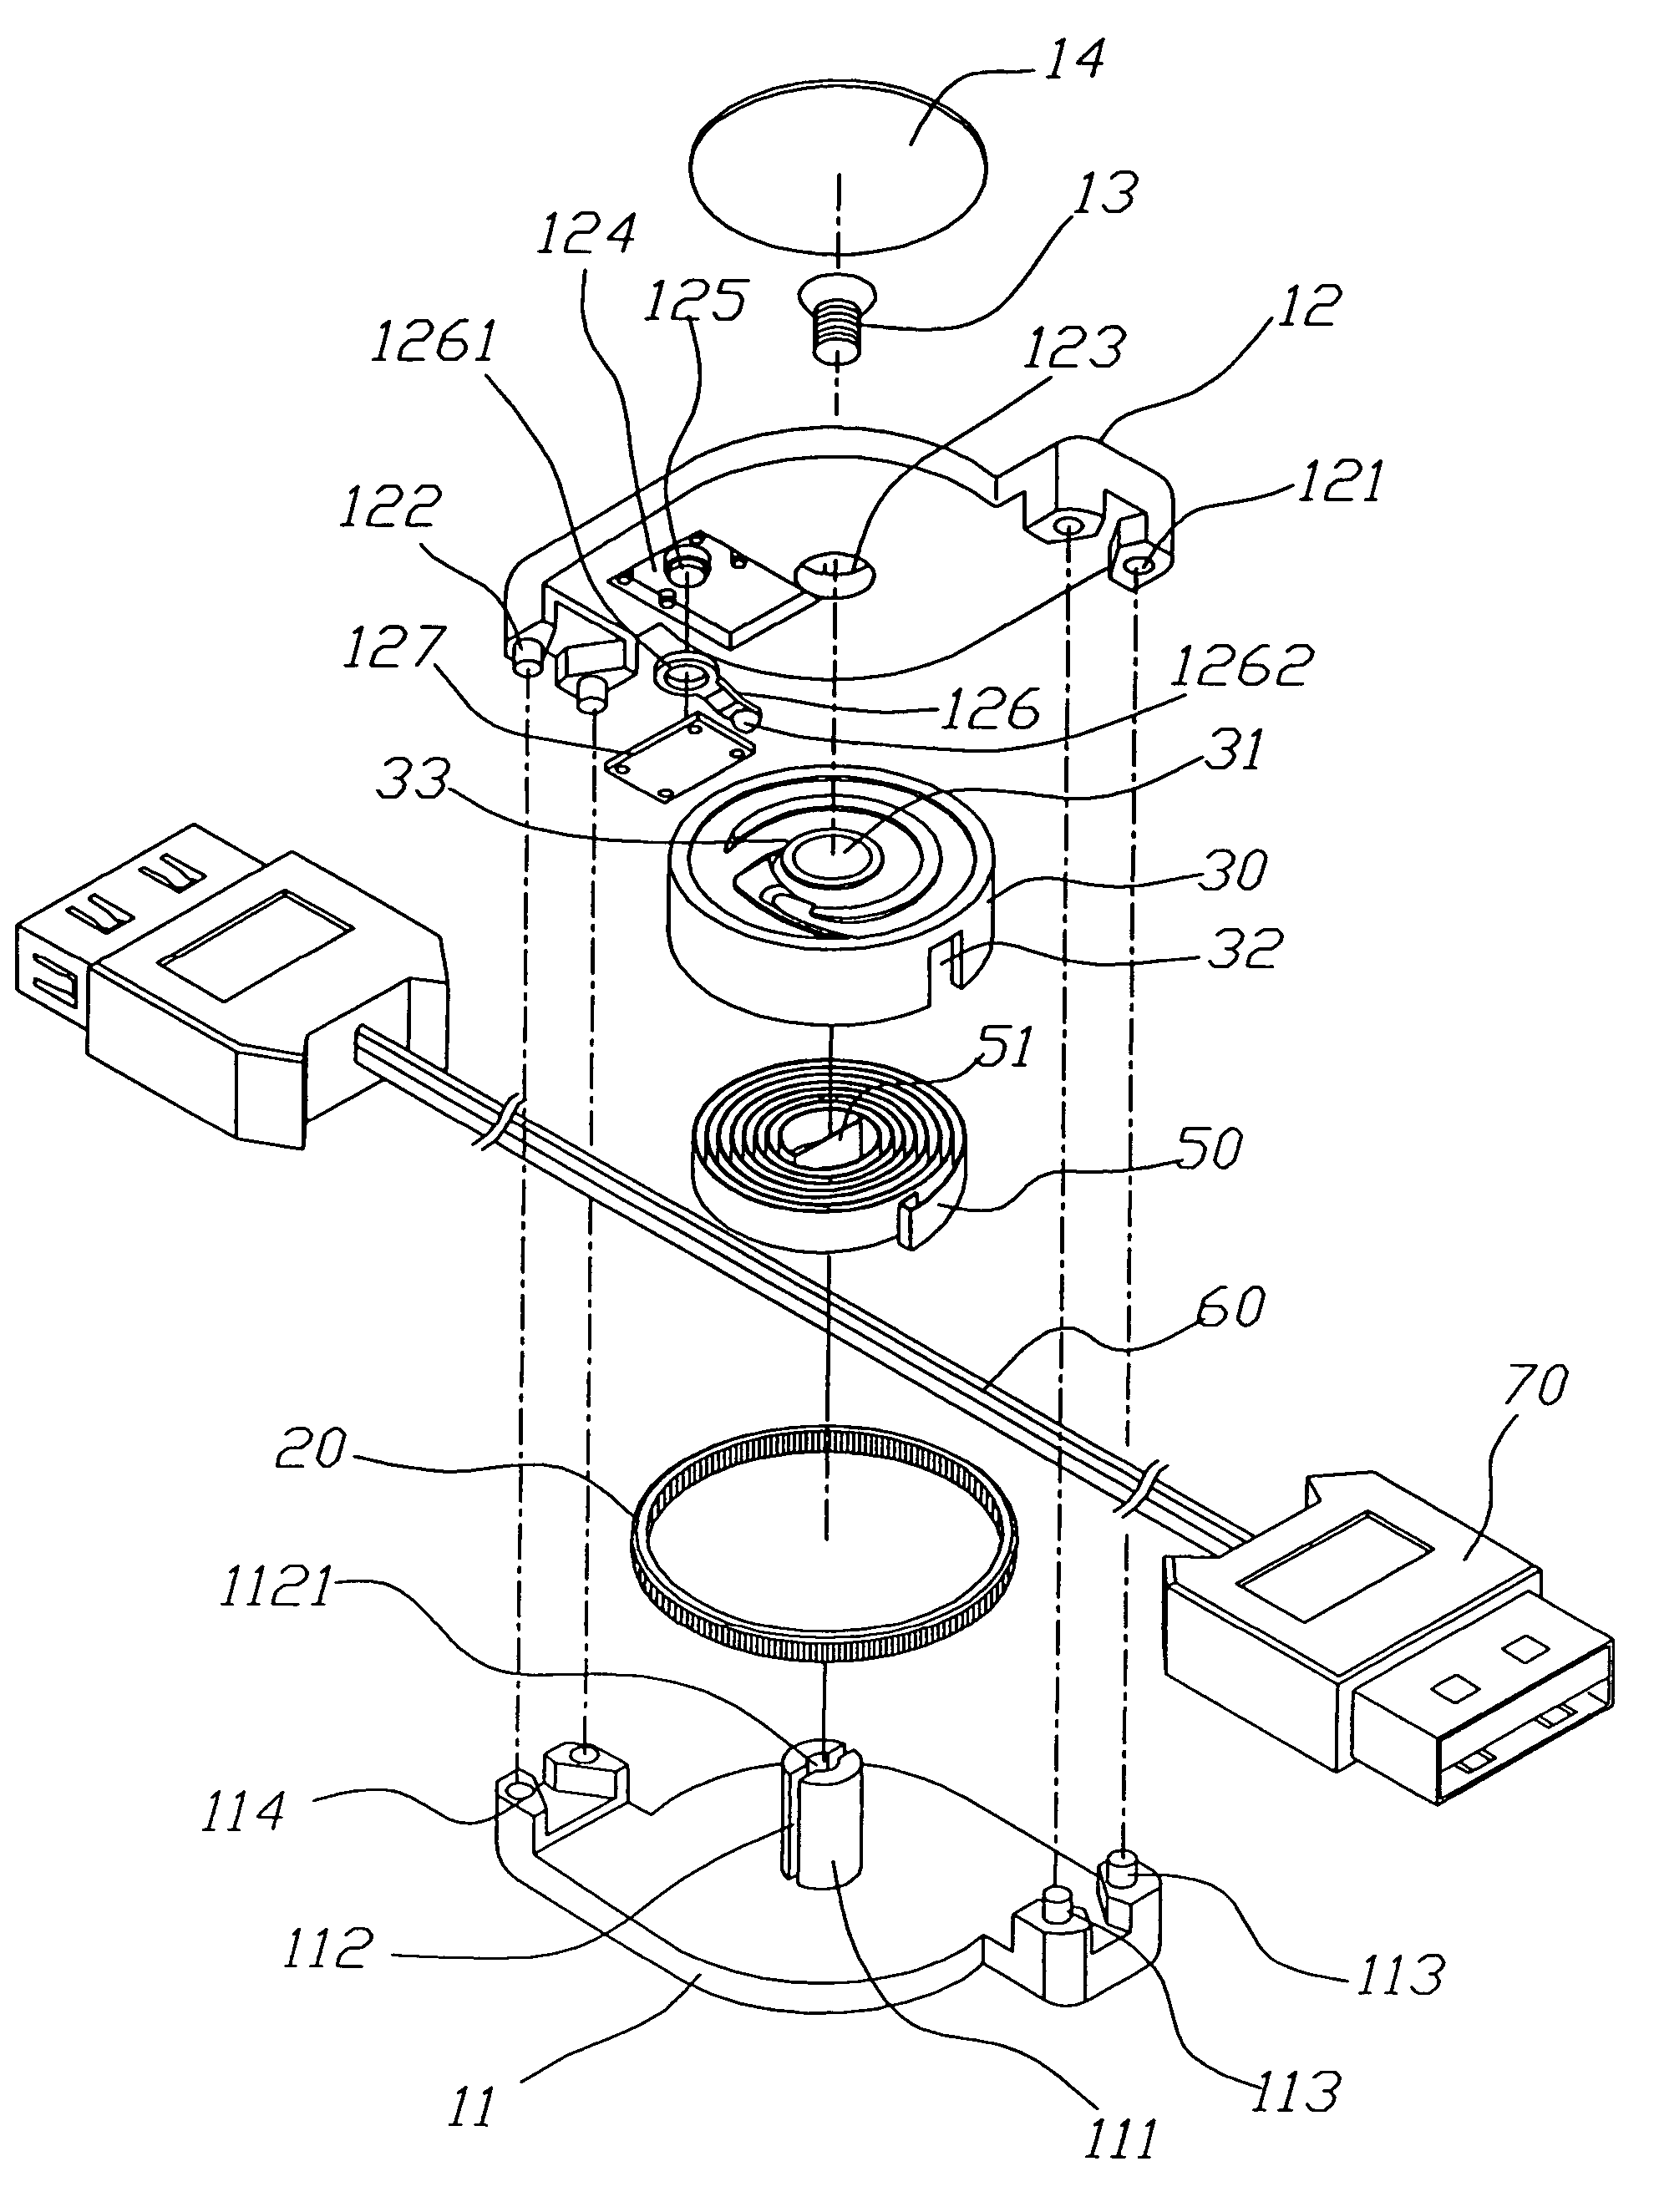 patent us7364109 - cable reel